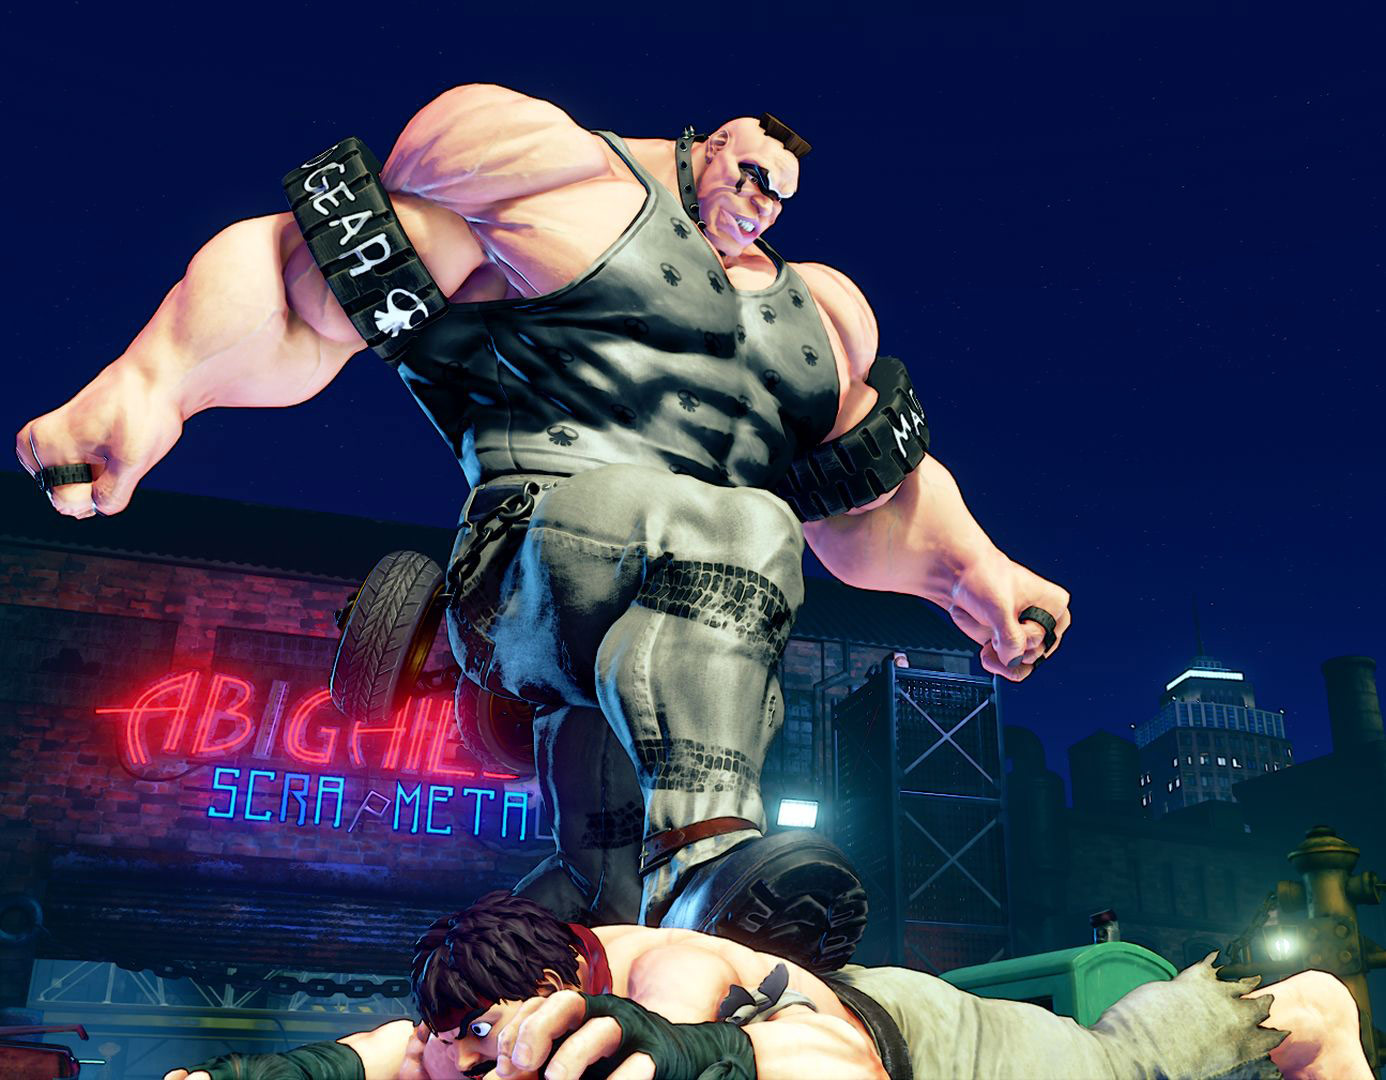 Abigail Street Fighter 5 5 out of 13 image gallery